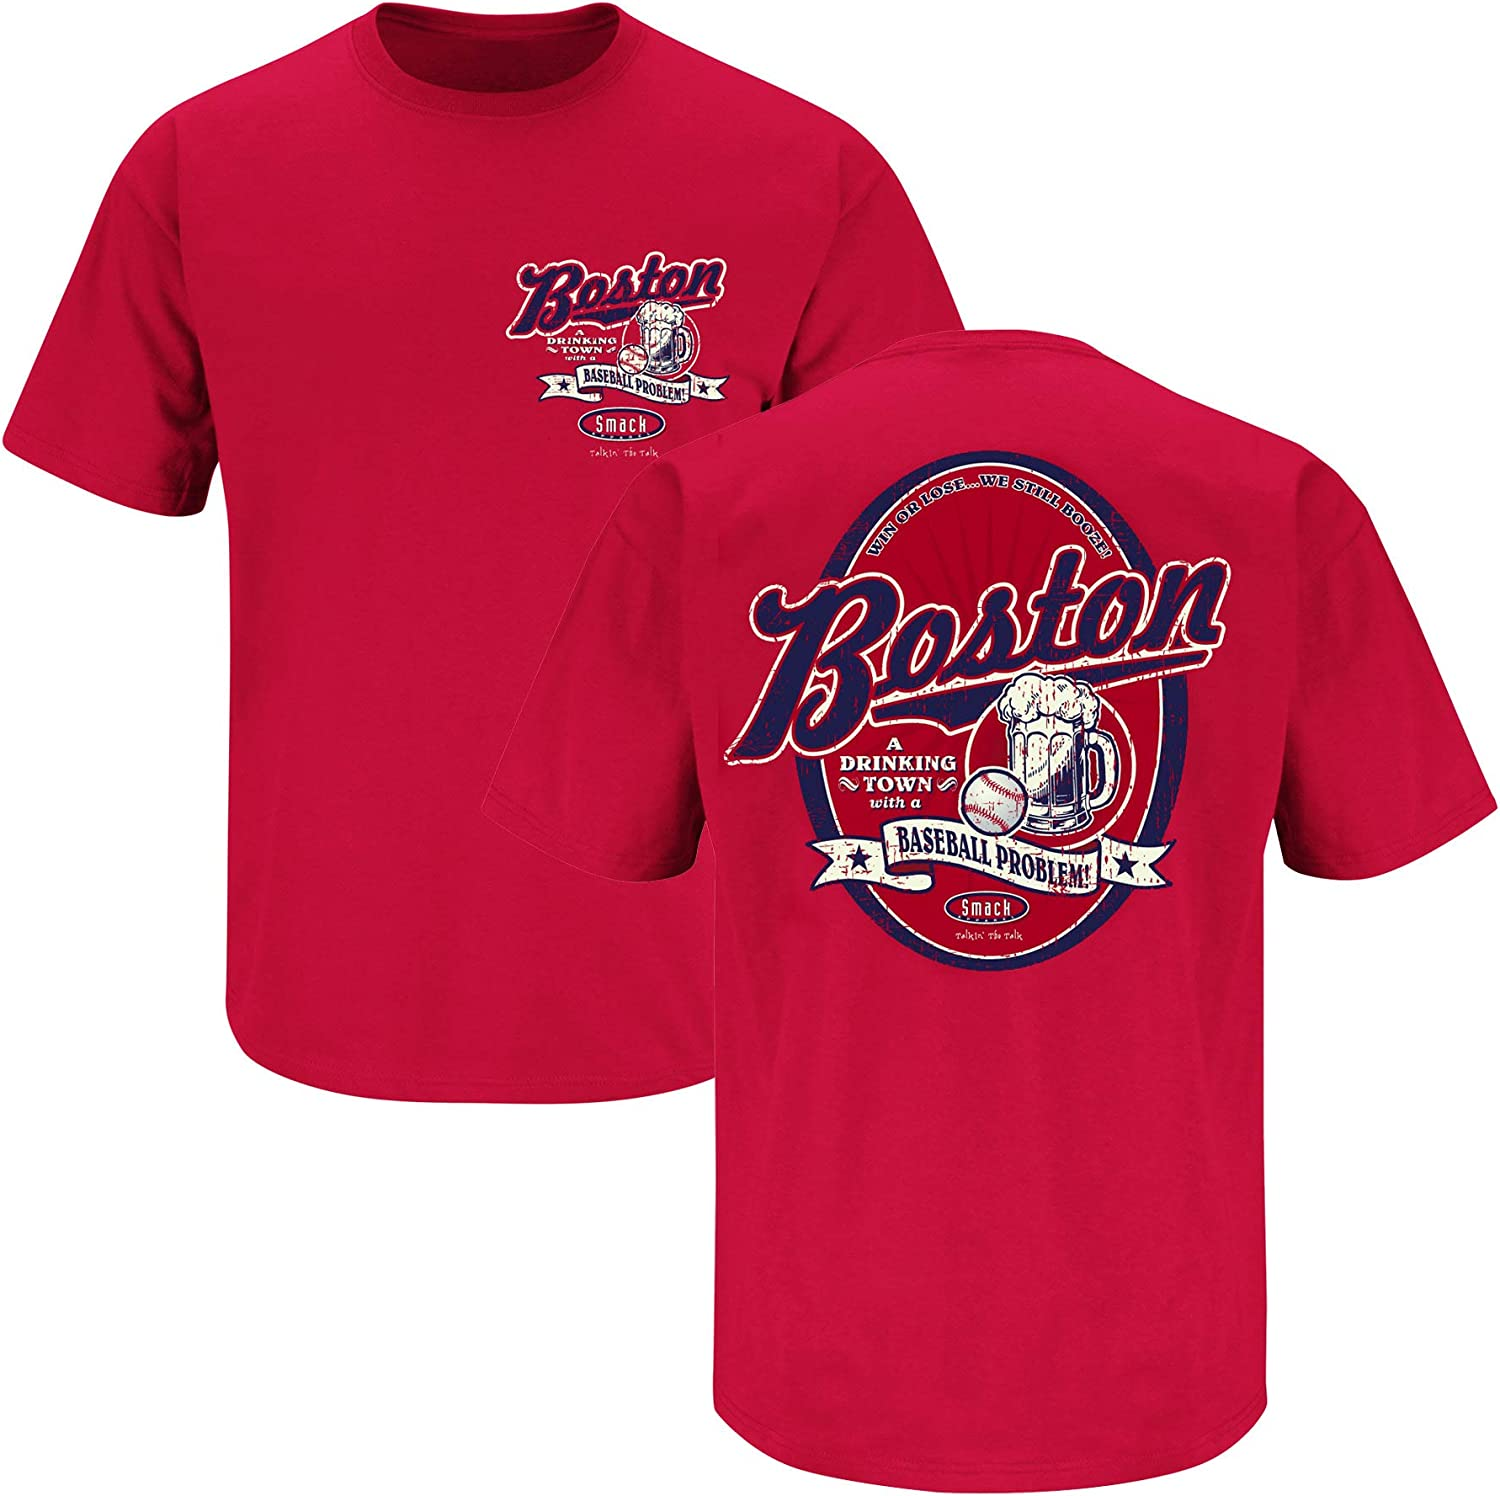 Sm-5X A Drinking Town with a Baseball Problem T-Shirt Boston Baseball Fans or Sticker